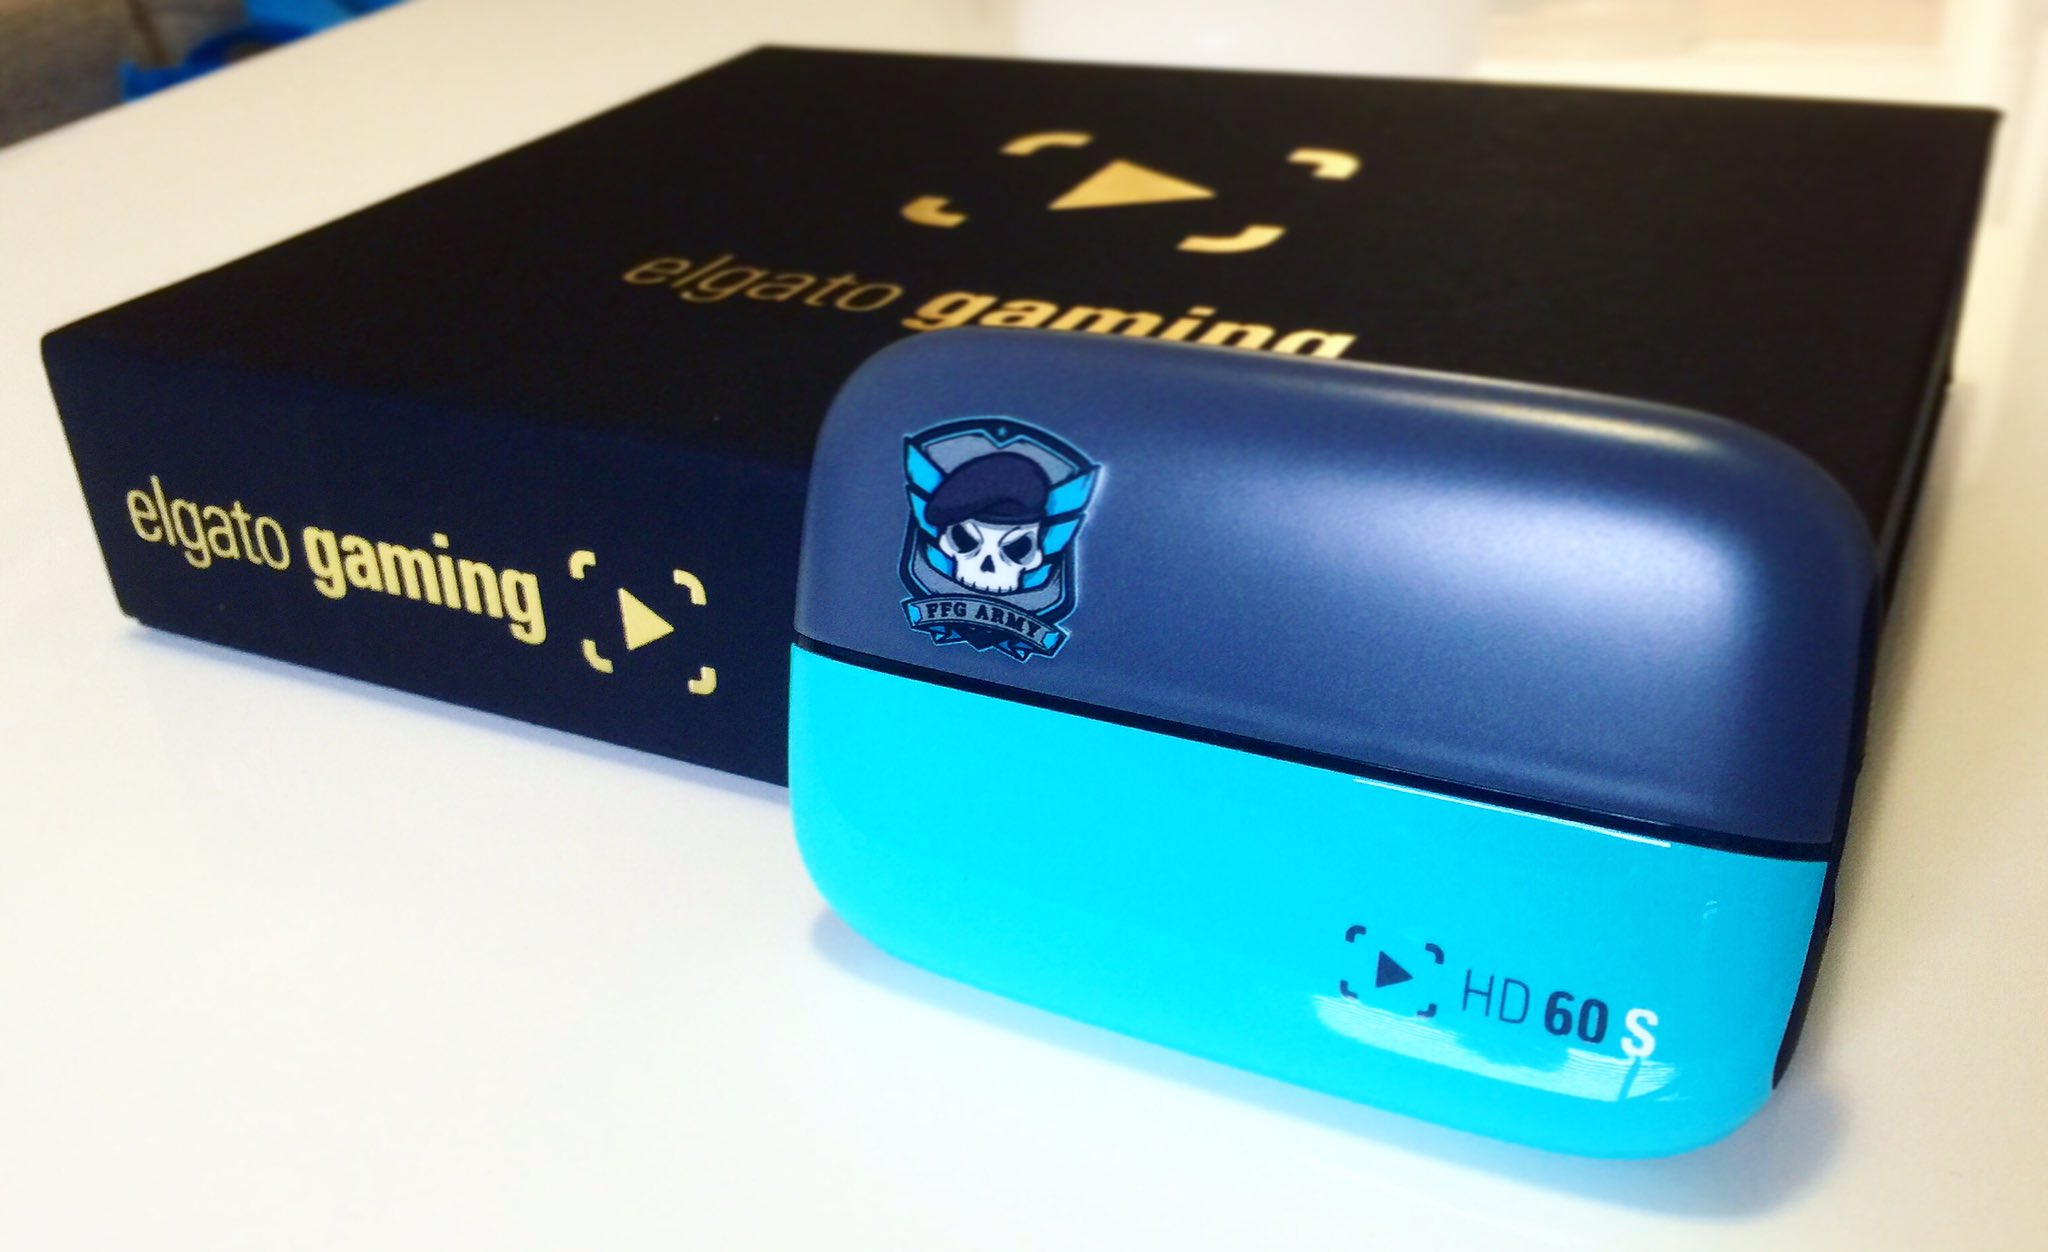 Representing the FFG Army on the @ElgatoGaming HD60S! 1 of 500 Day 0 Editions in the World 🌏😁 https://t.co/8IMDI7ATOC